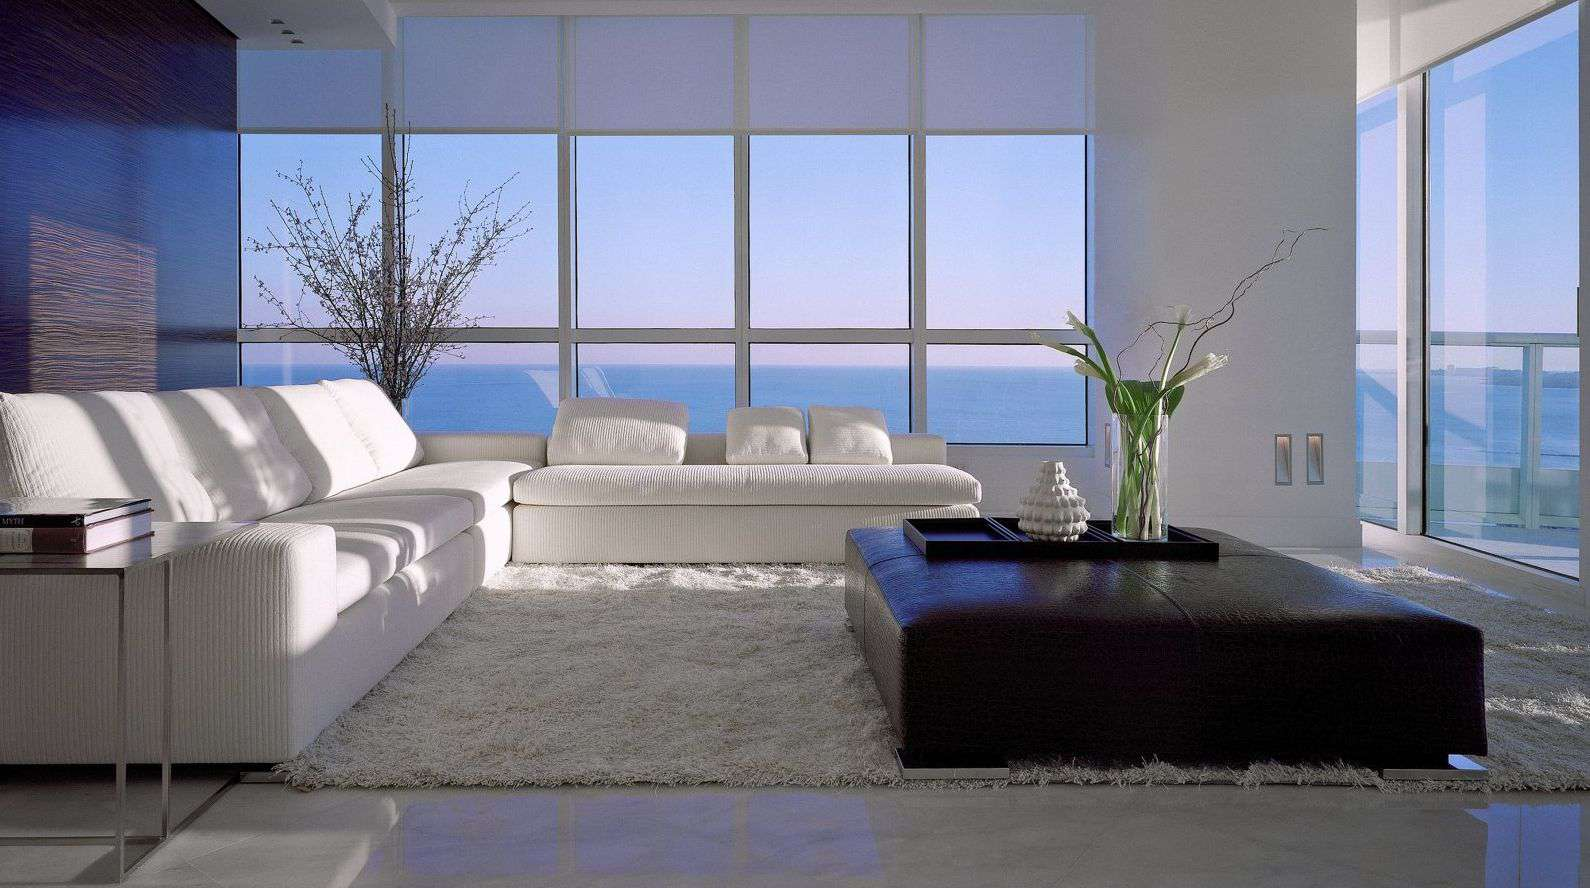 Sidelights casting light into a living room with floor-to-ceiling windows, white couches, and brown ottoman.